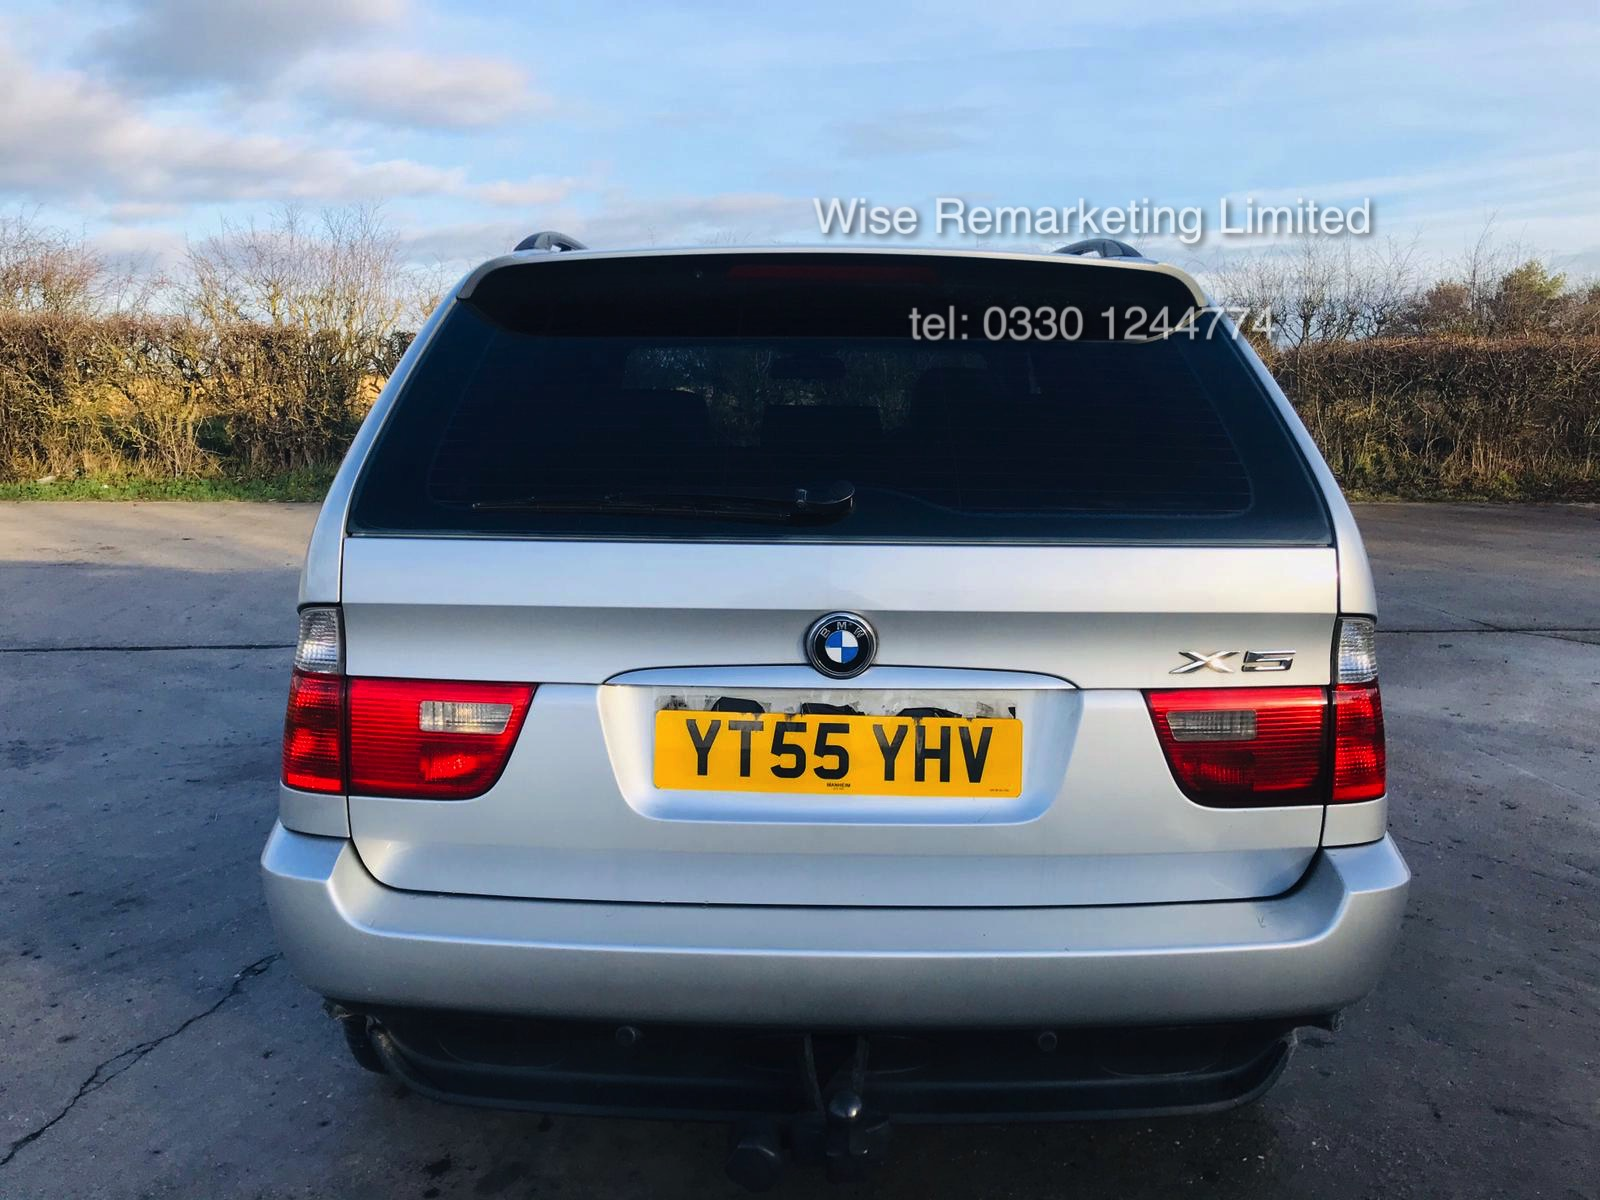 BMW X5 Sport 3.0d Auto - 2006 Model - Full Leather - Heated Seats - Fully Loaded - Image 4 of 20